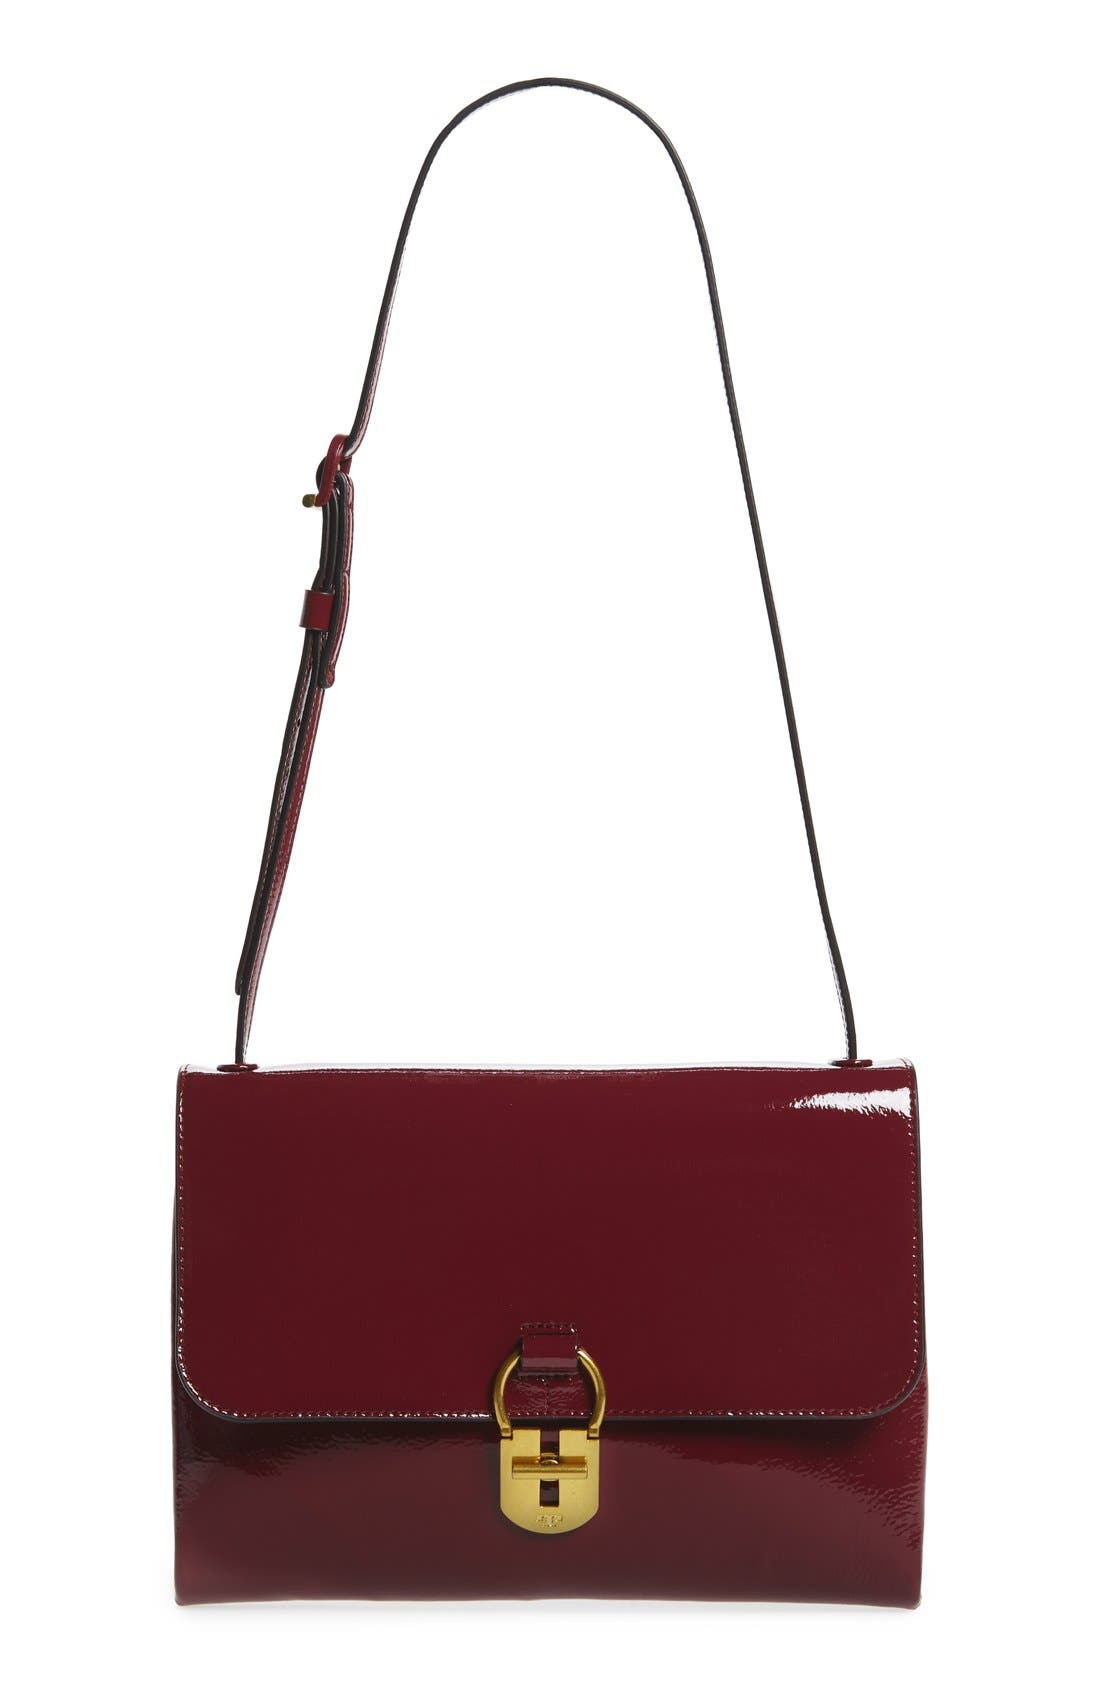 Alternate Image 1 Selected - Tory Burch Patent Leather Convertible Shoulder Bag